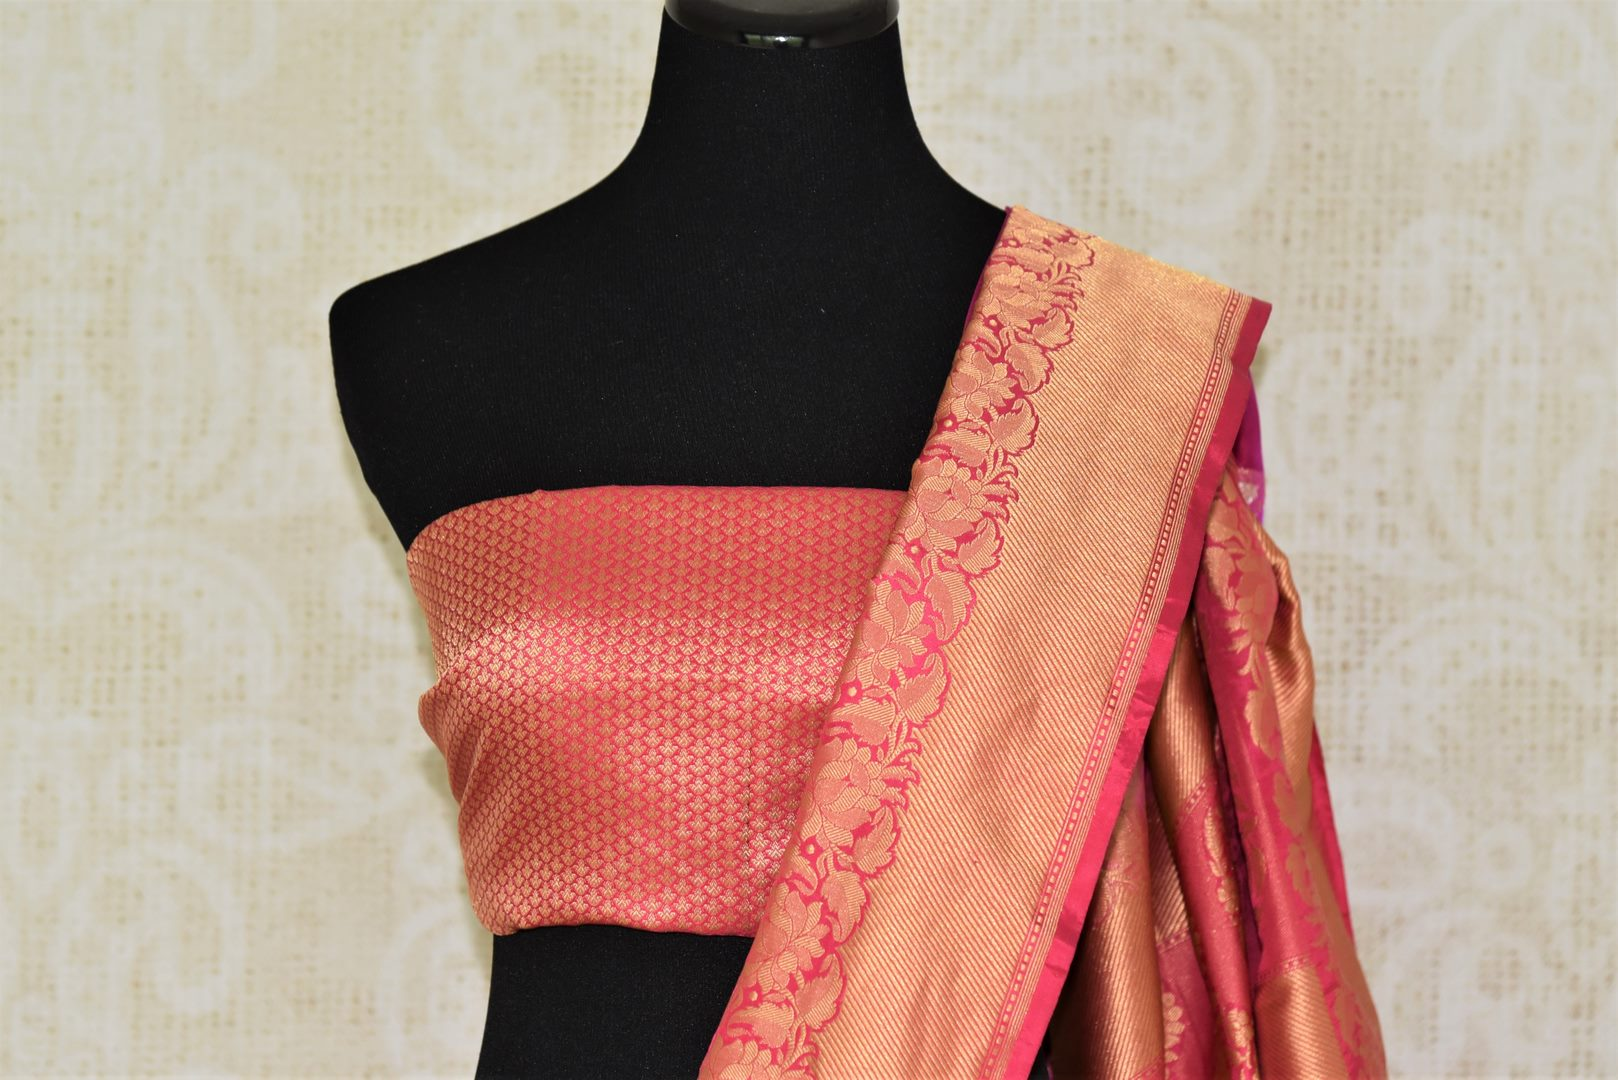 Buy beautiful magenta Banarasi silk sari online in USA with zari border. Add beautiful Indian wedding sarees to your ethnic wardrobe from Pure Elegance Indian clothing store in USA. You can also shop online at the comfort of your home.-blouse pallu